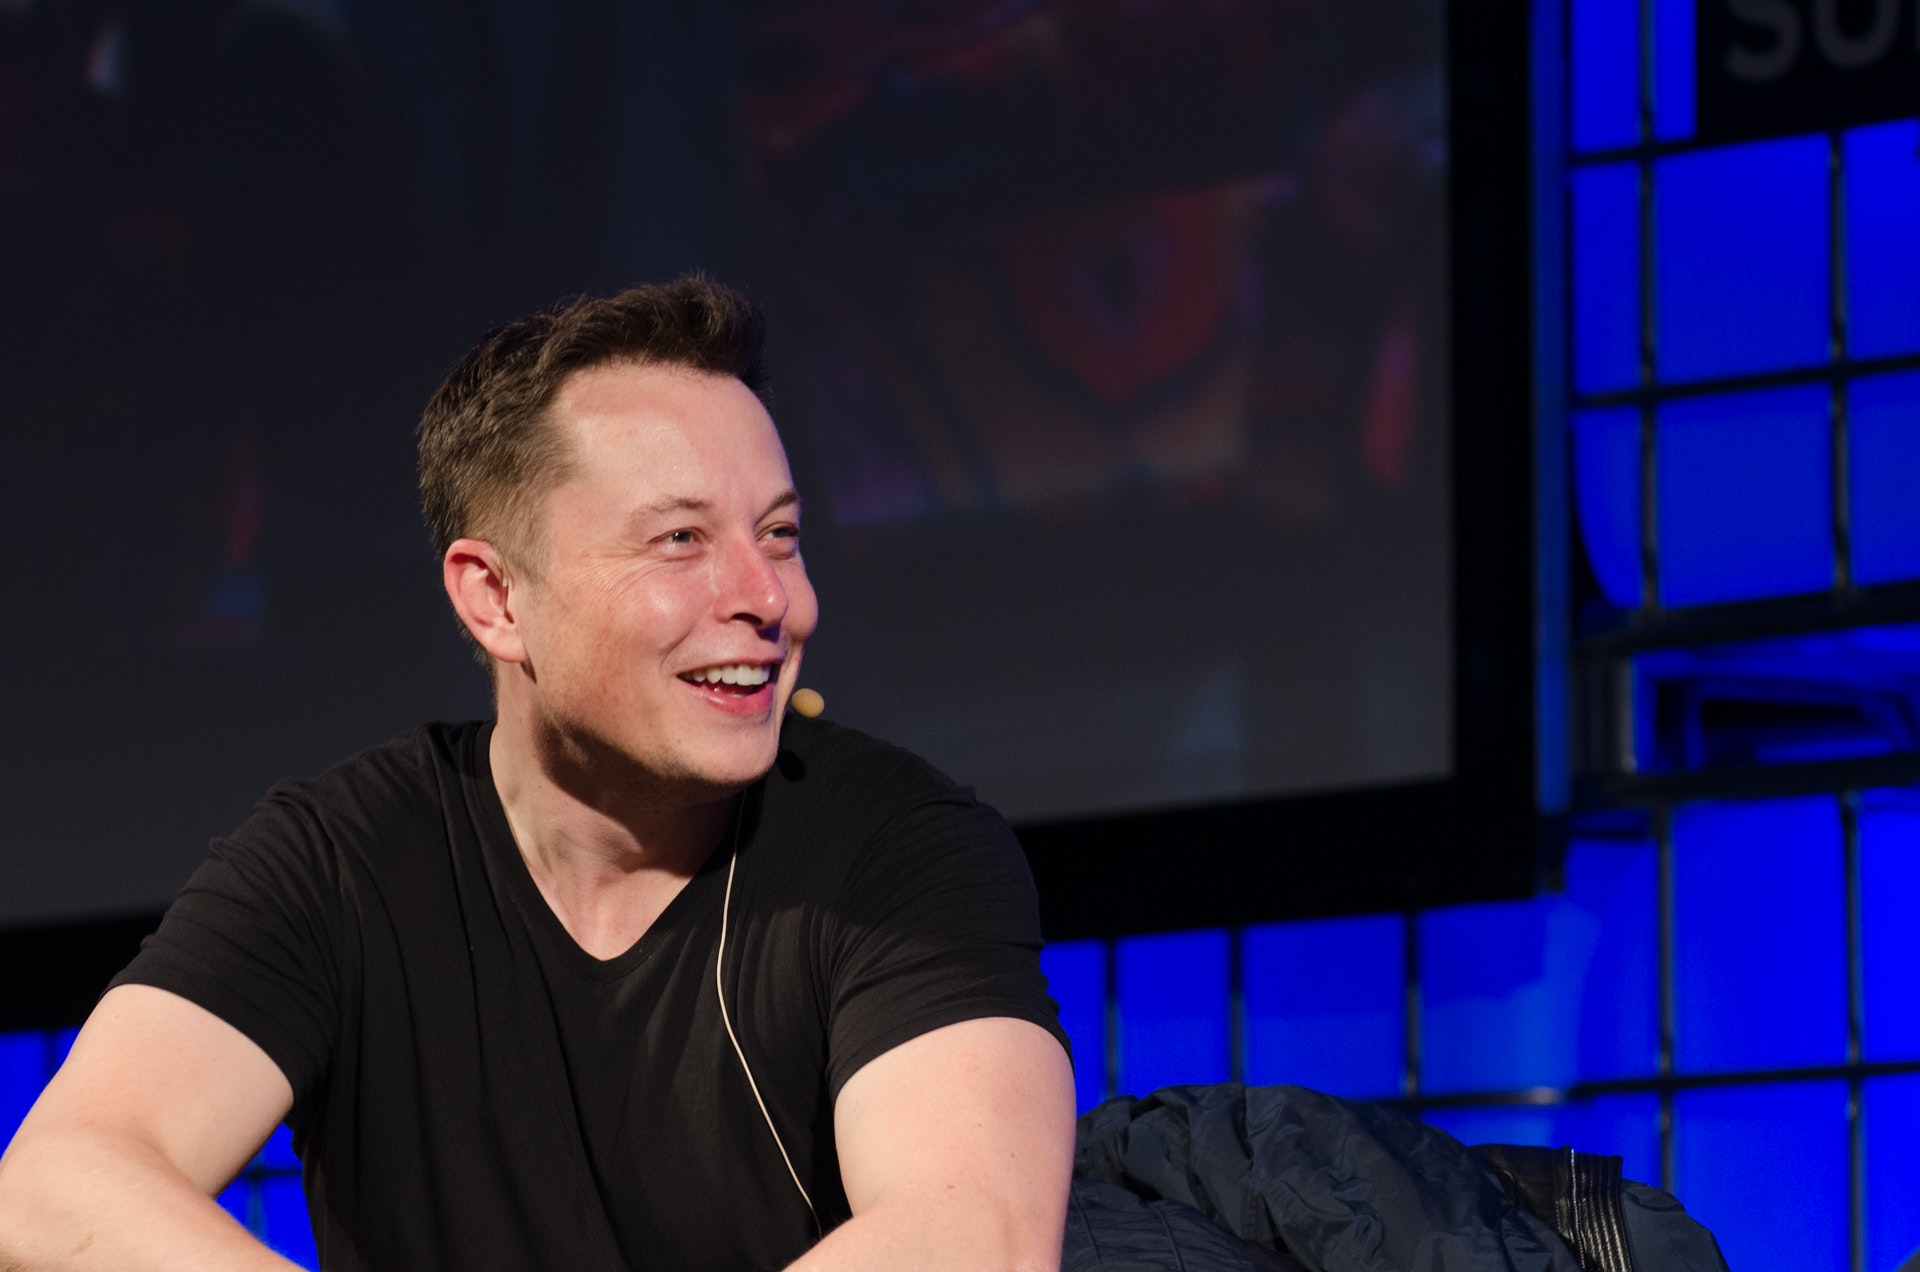 Elon Musk Reveals the One Question He Would Ask a Human-Level A.I.